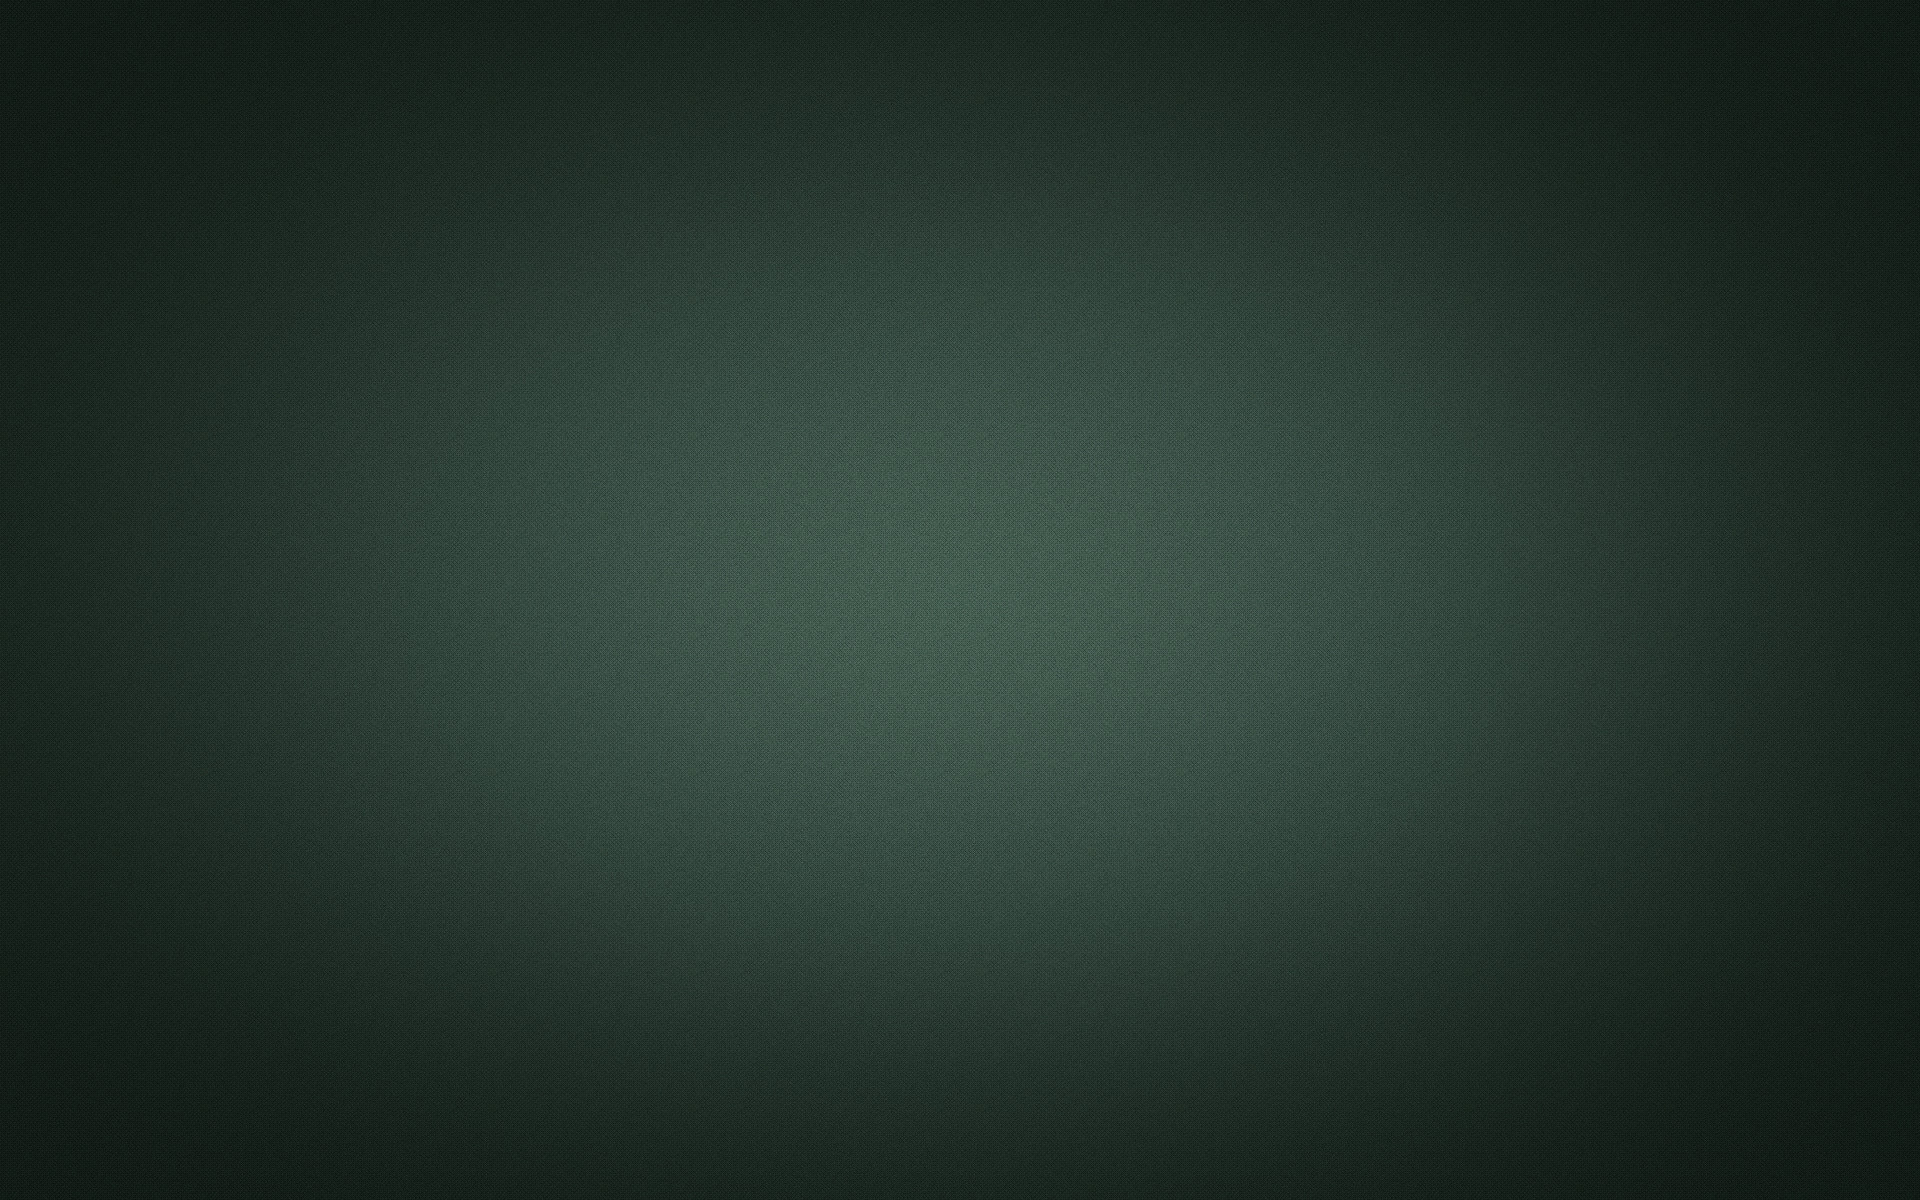 1920x1200 Plain Backgrounds